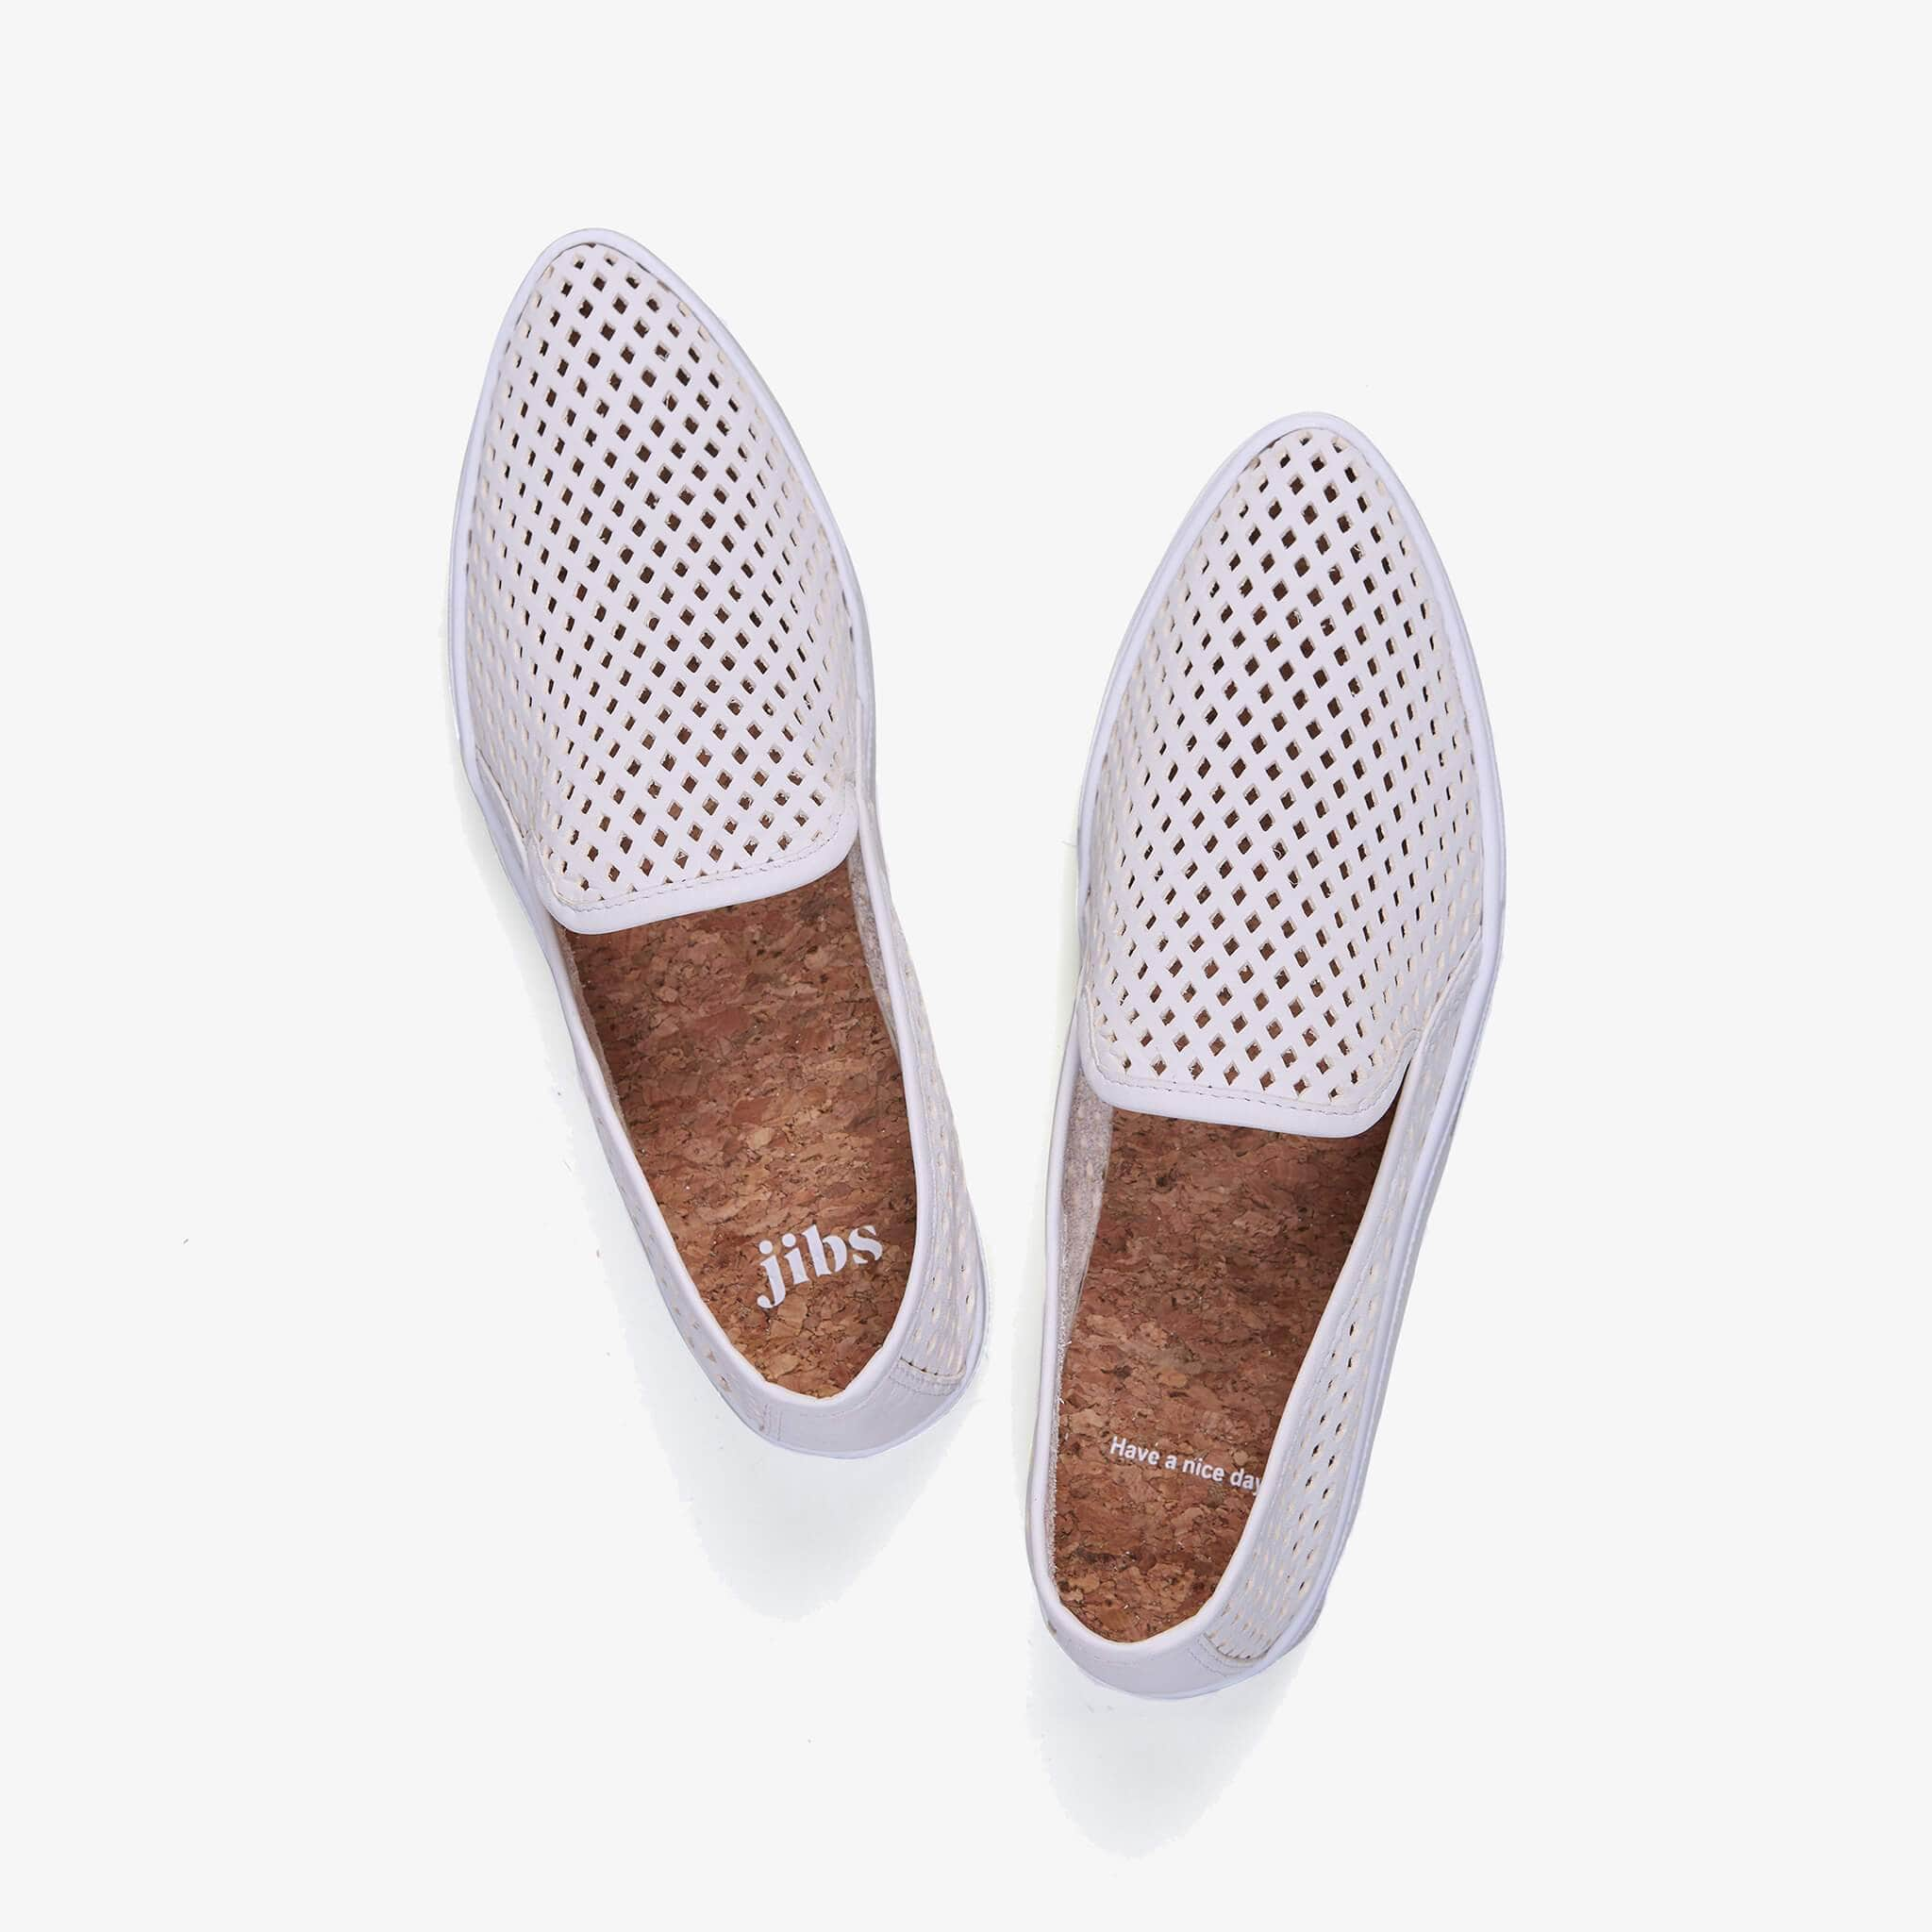 JIbs Slim Soft White Slip On Sneaker Flat Top Have A Nice Day